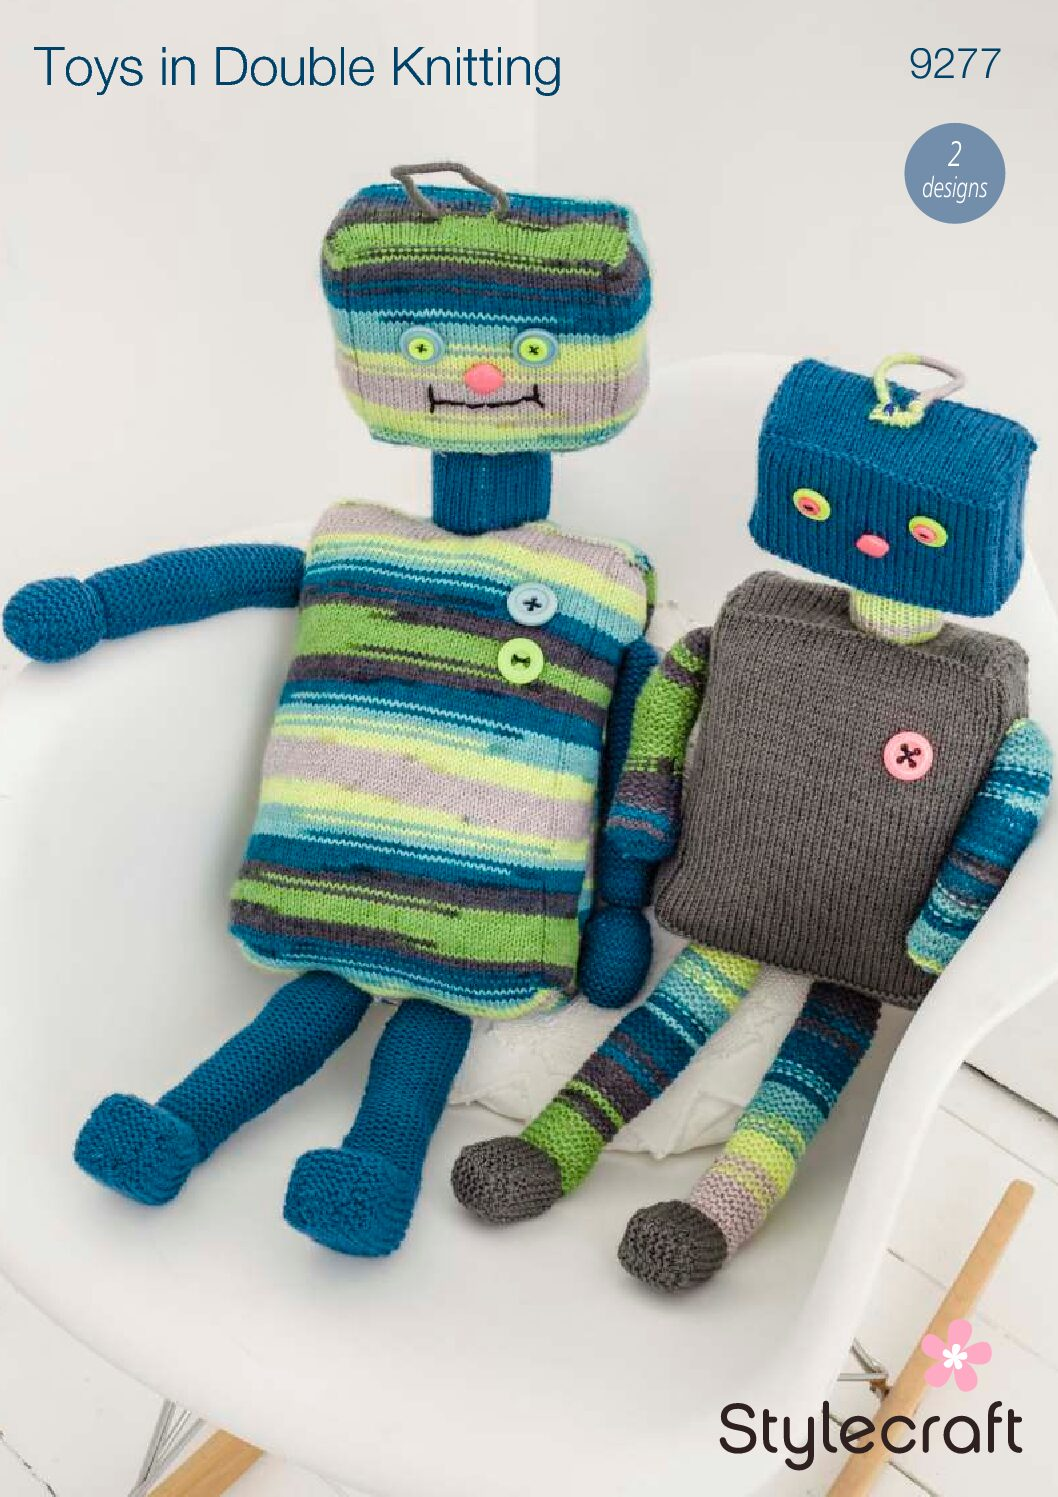 Stylecraft Pattern Toys 9277 (download) product image